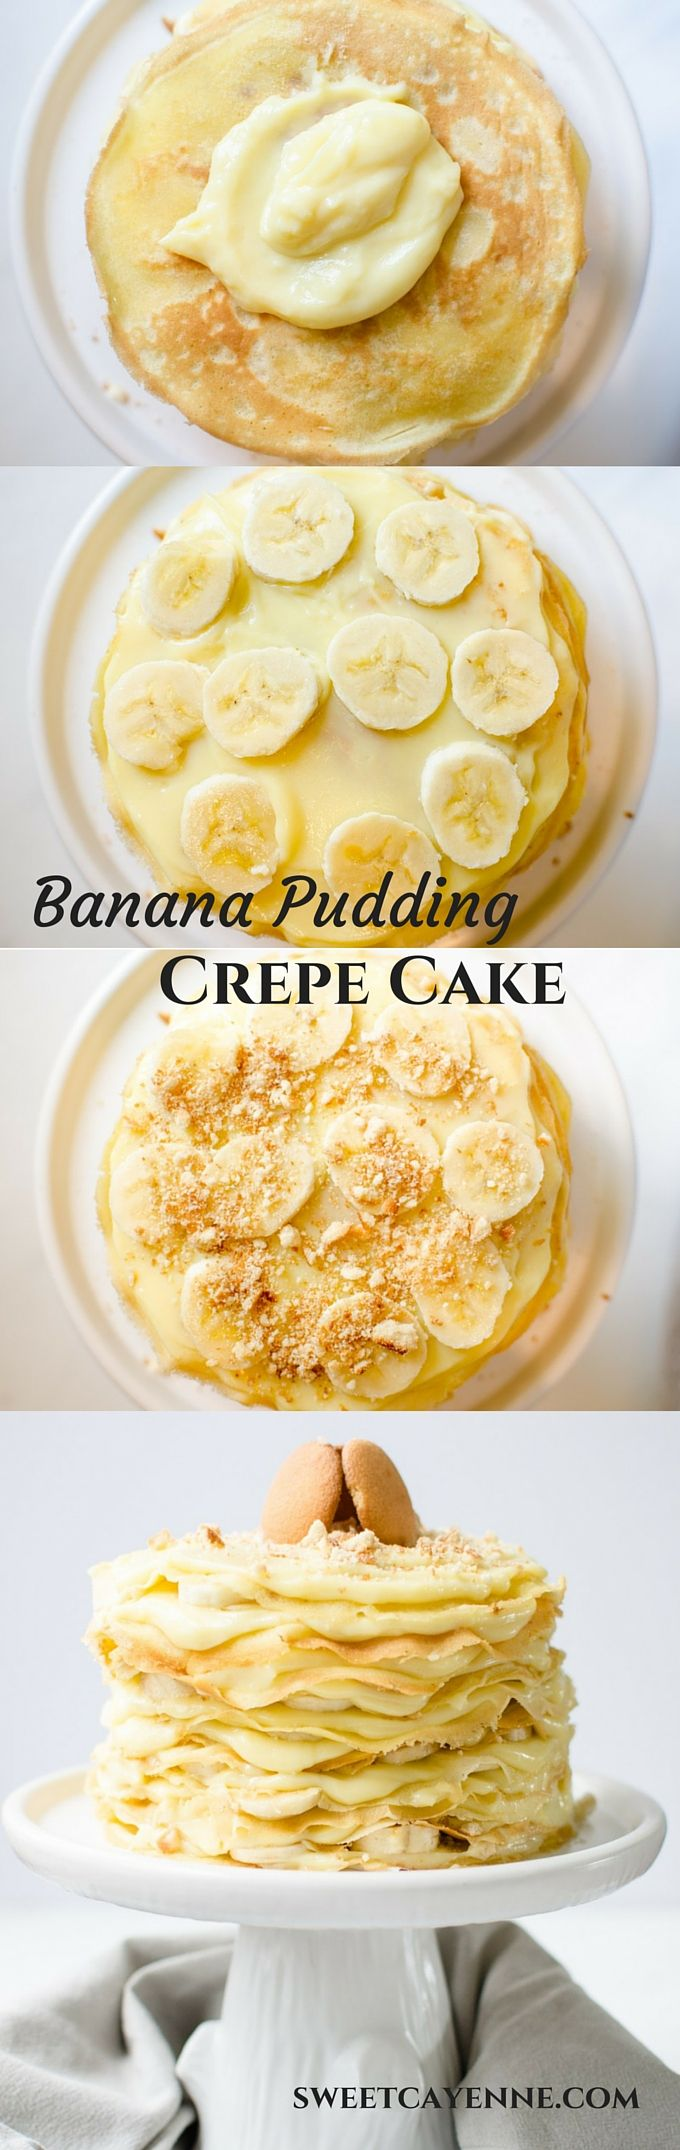 This recipe for 12 Layer Banana Pudding Crepe Cake piles butter crepes with luscious vanilla pudding, sliced bananas, and crushed Nilla wafer cookies!